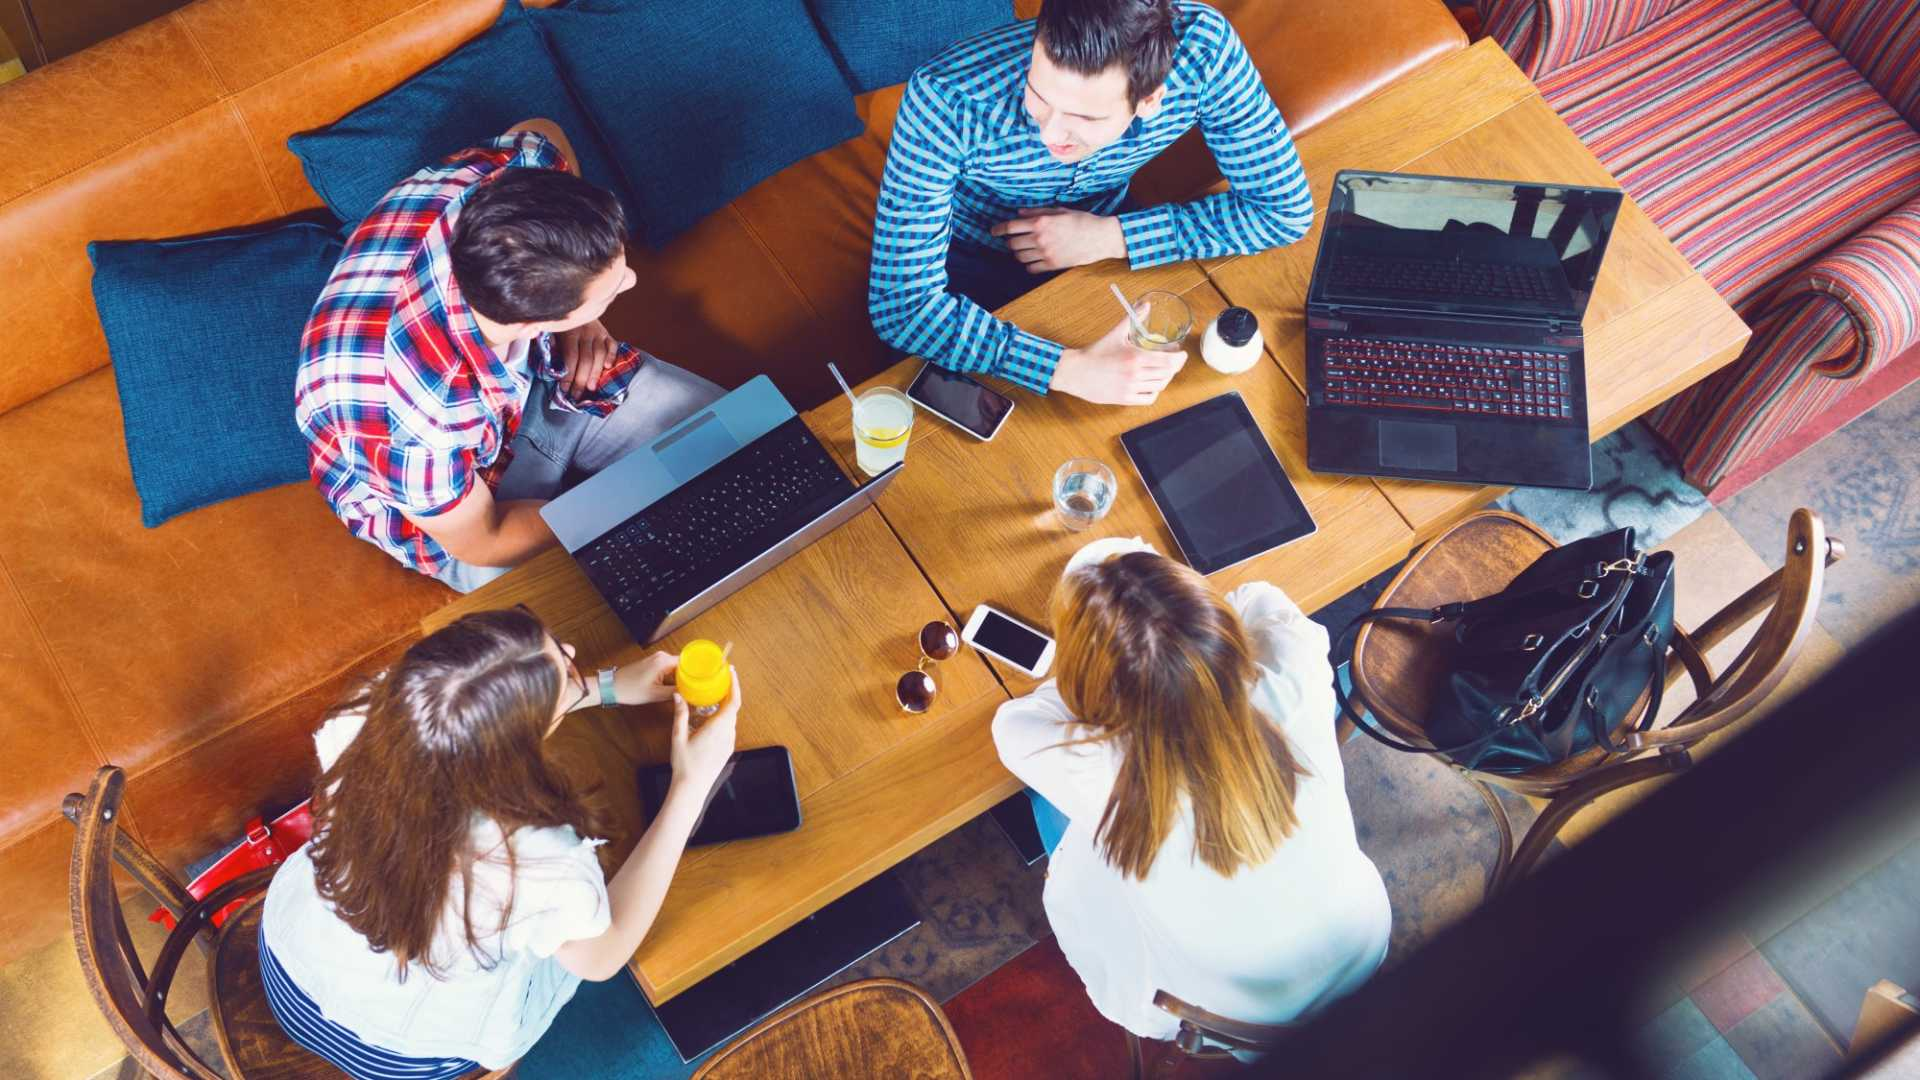 Millennials: A New Generation Is Reshaping the Workplace